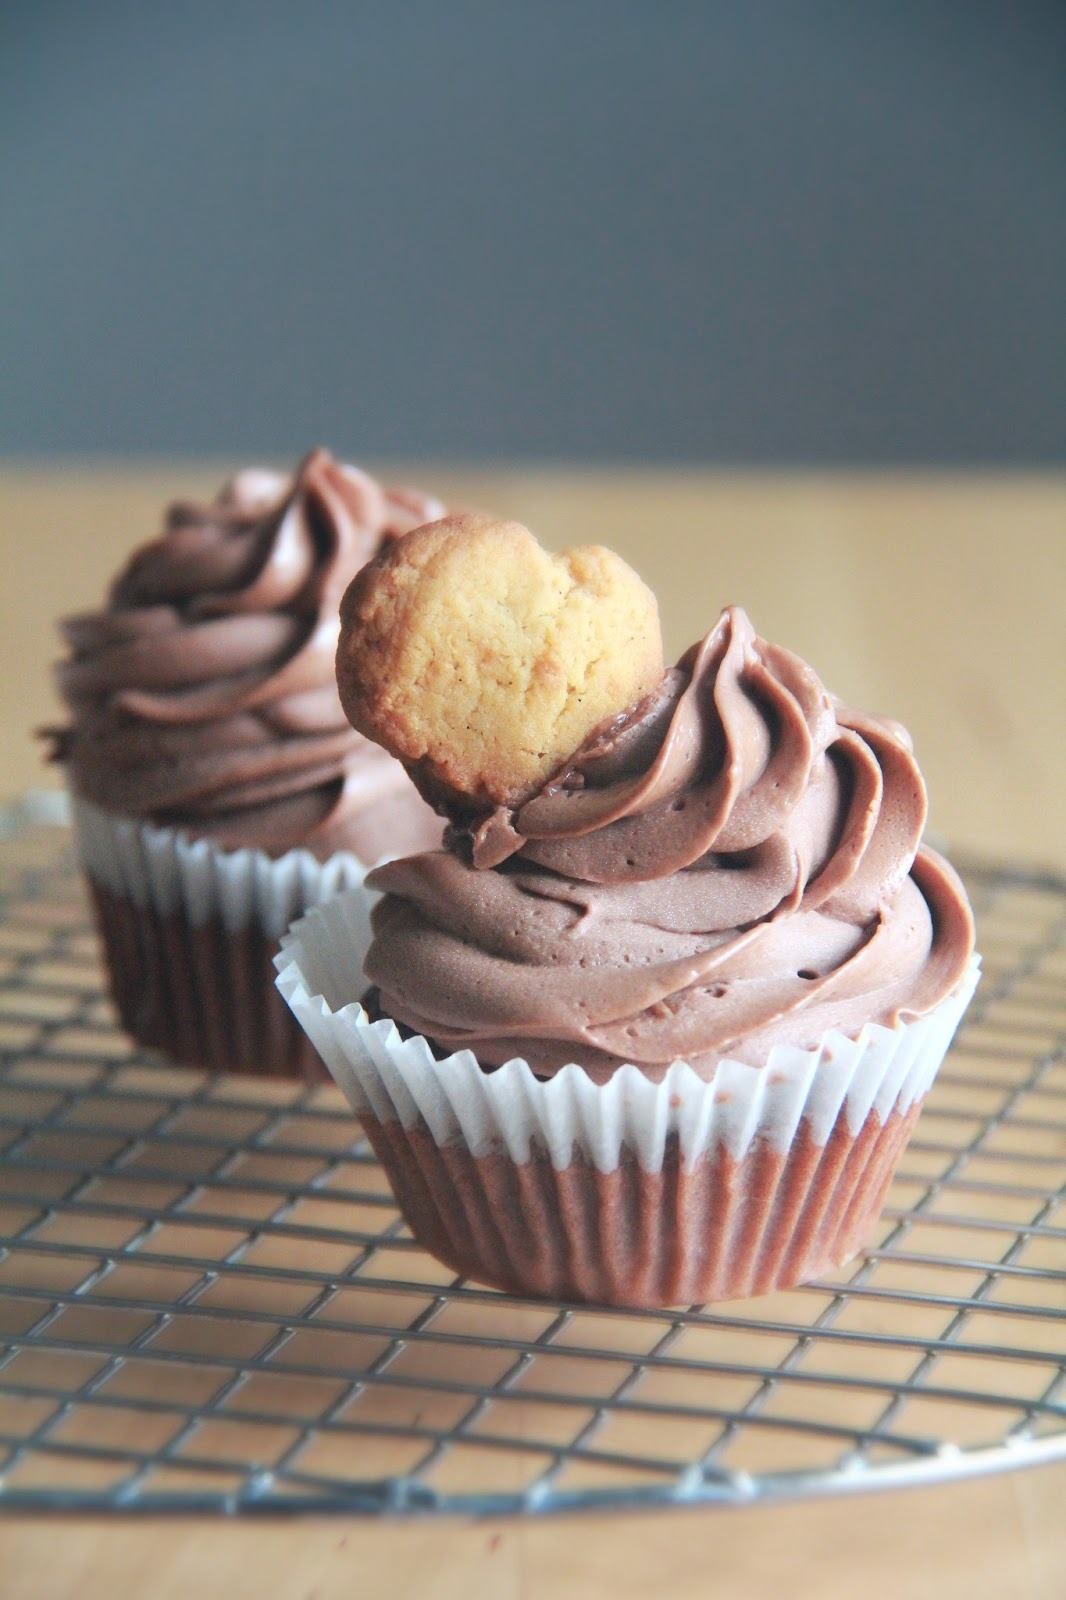 Recipe: Malted Milk Chocolate Cupcakes